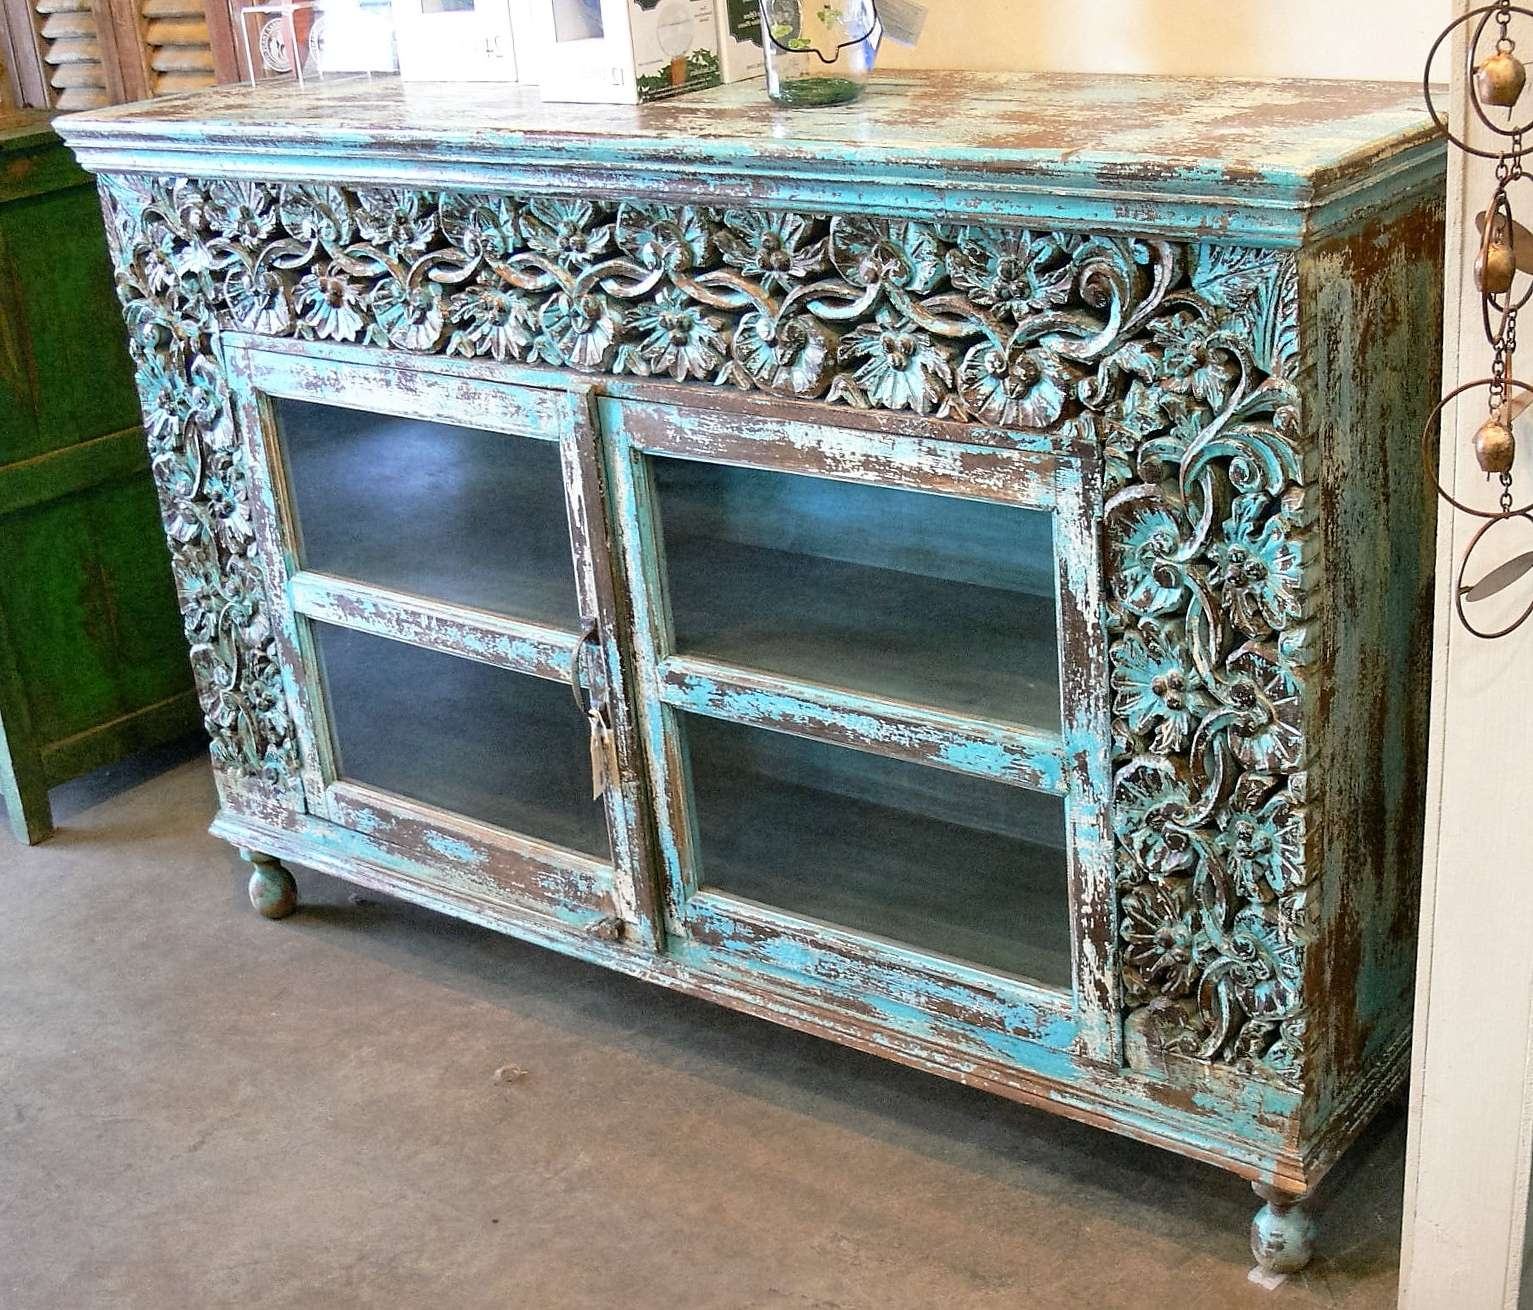 Sideboards & Buffets » Market Imports – Home, Patio, Antiques With Turquoise Sideboards (View 5 of 20)